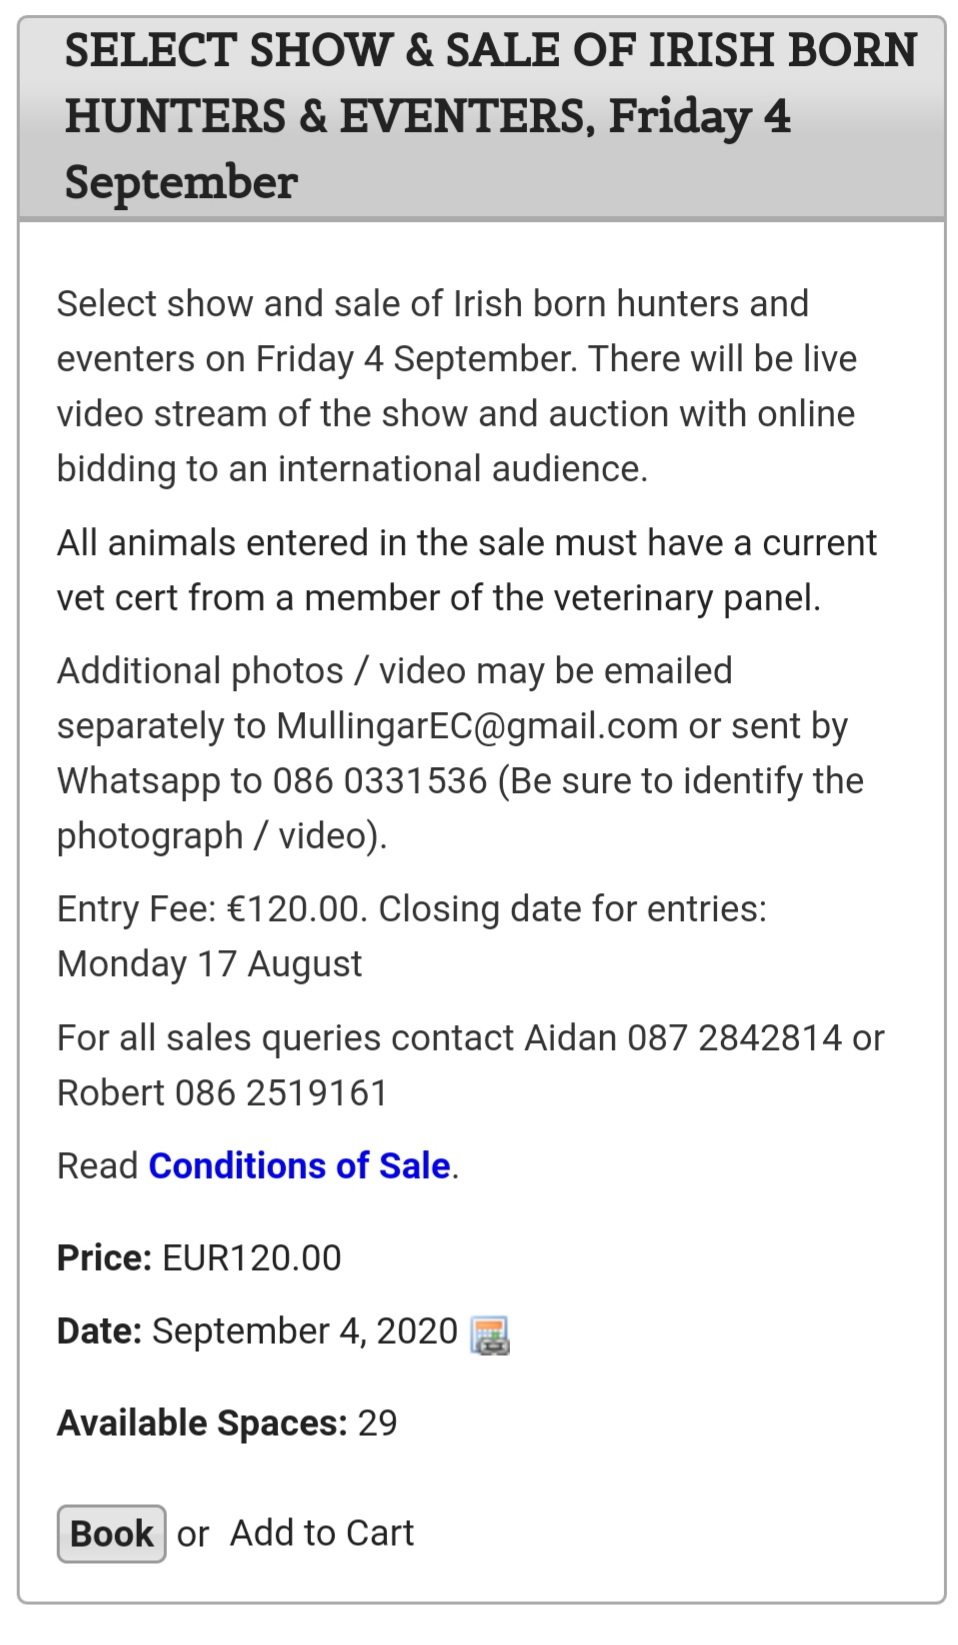 SELECT SHOW AND SALE of Irish Born Hunters & Eventers